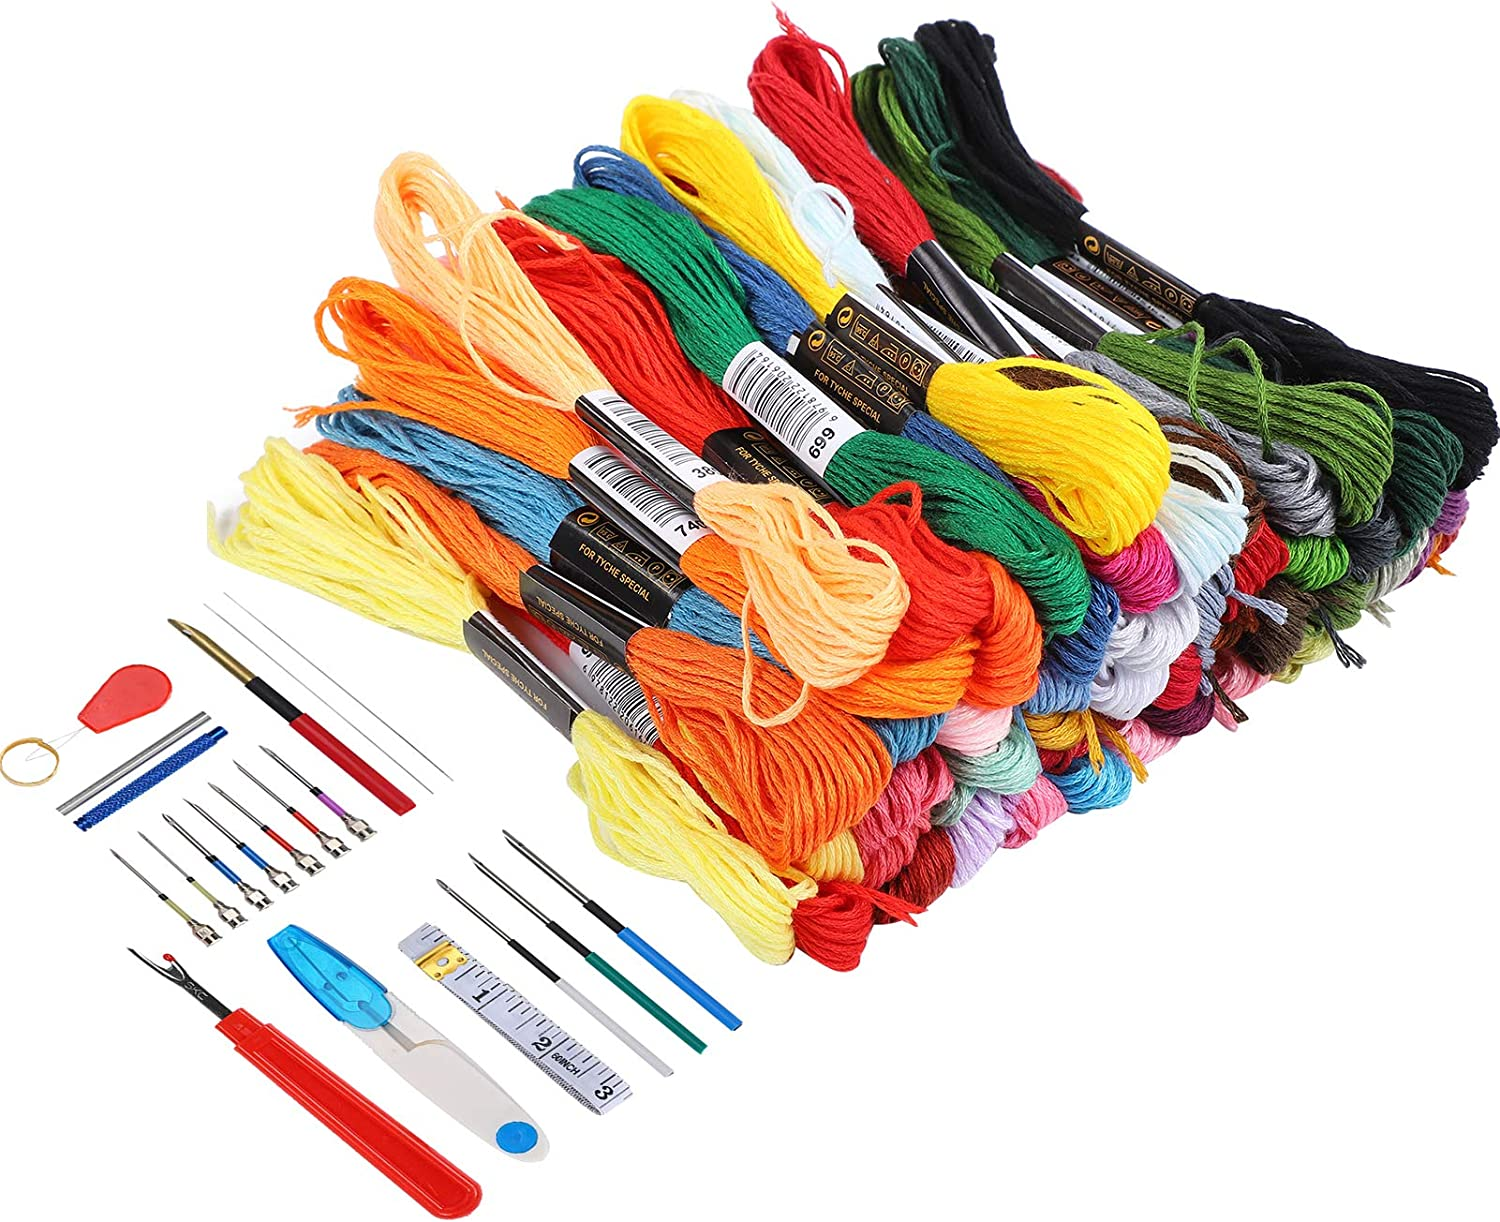 TOPINCN Punch Needle Kits Supplies Embroidery NEW w Tucson Mall Pen